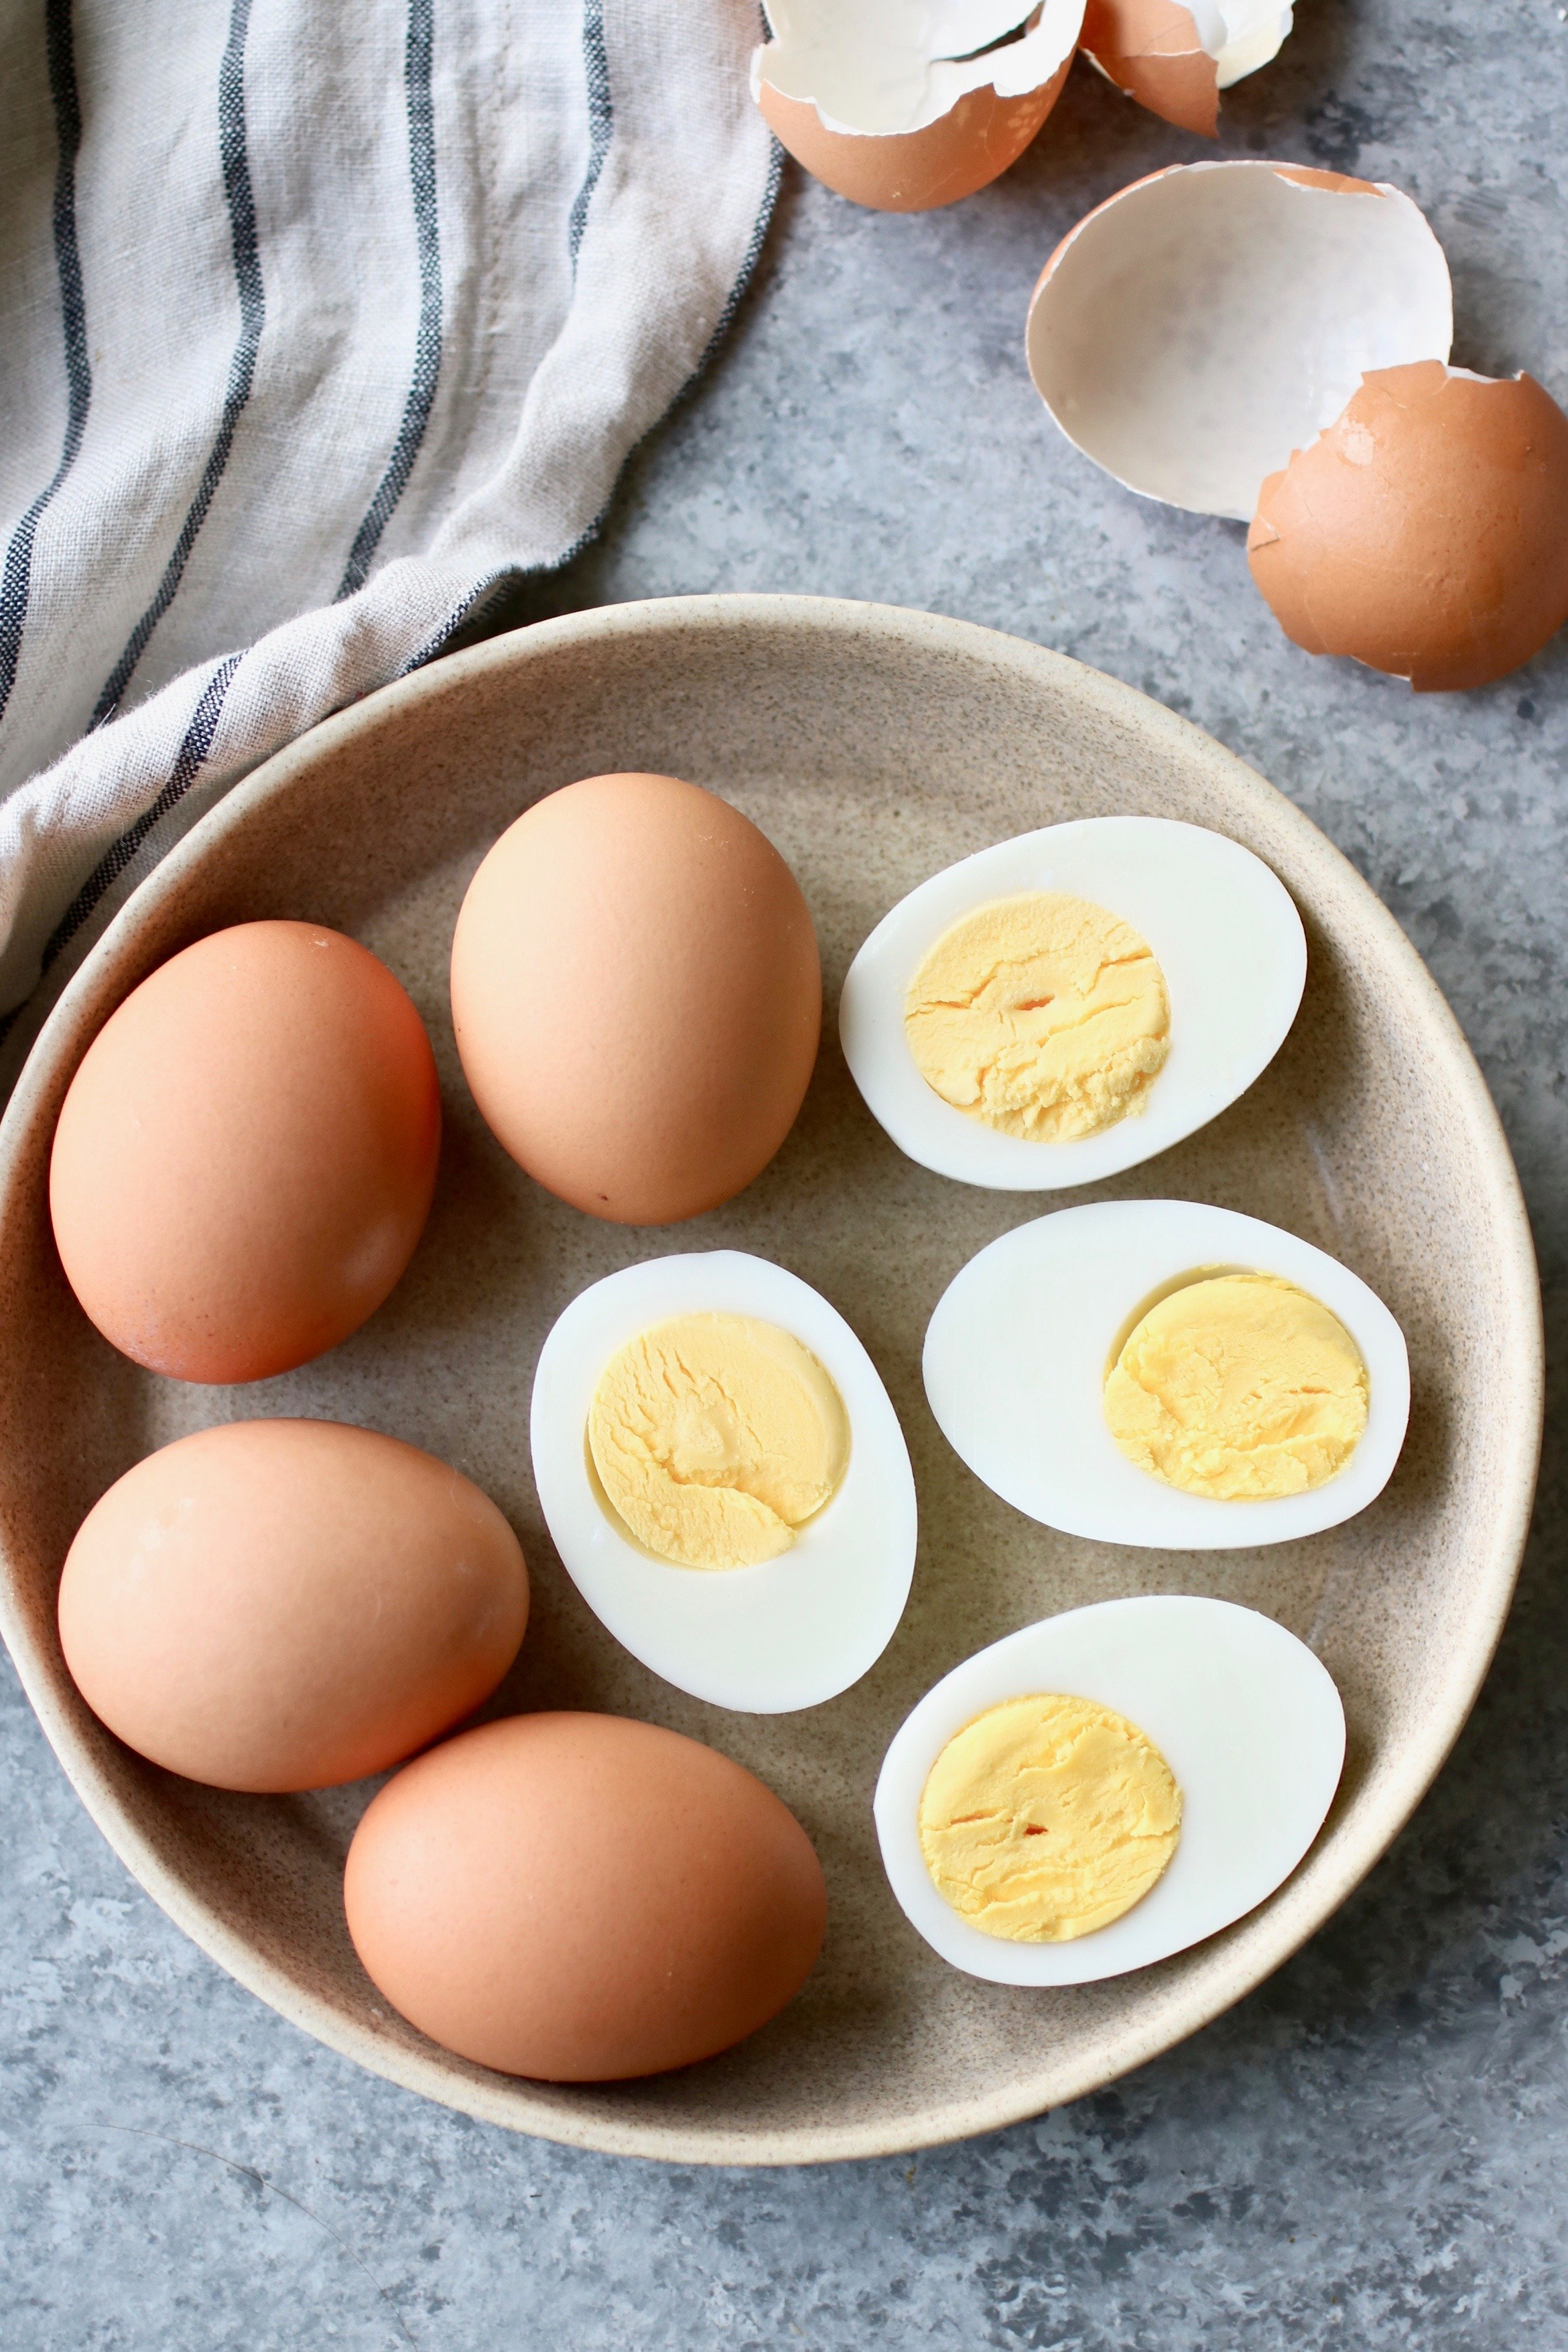 Overhead photo of Easy-Peel Hard Boiled Eggs on a small, cream colored plate. Four of the eggs with shells on next to four hard boiled egg halves showing yolks.